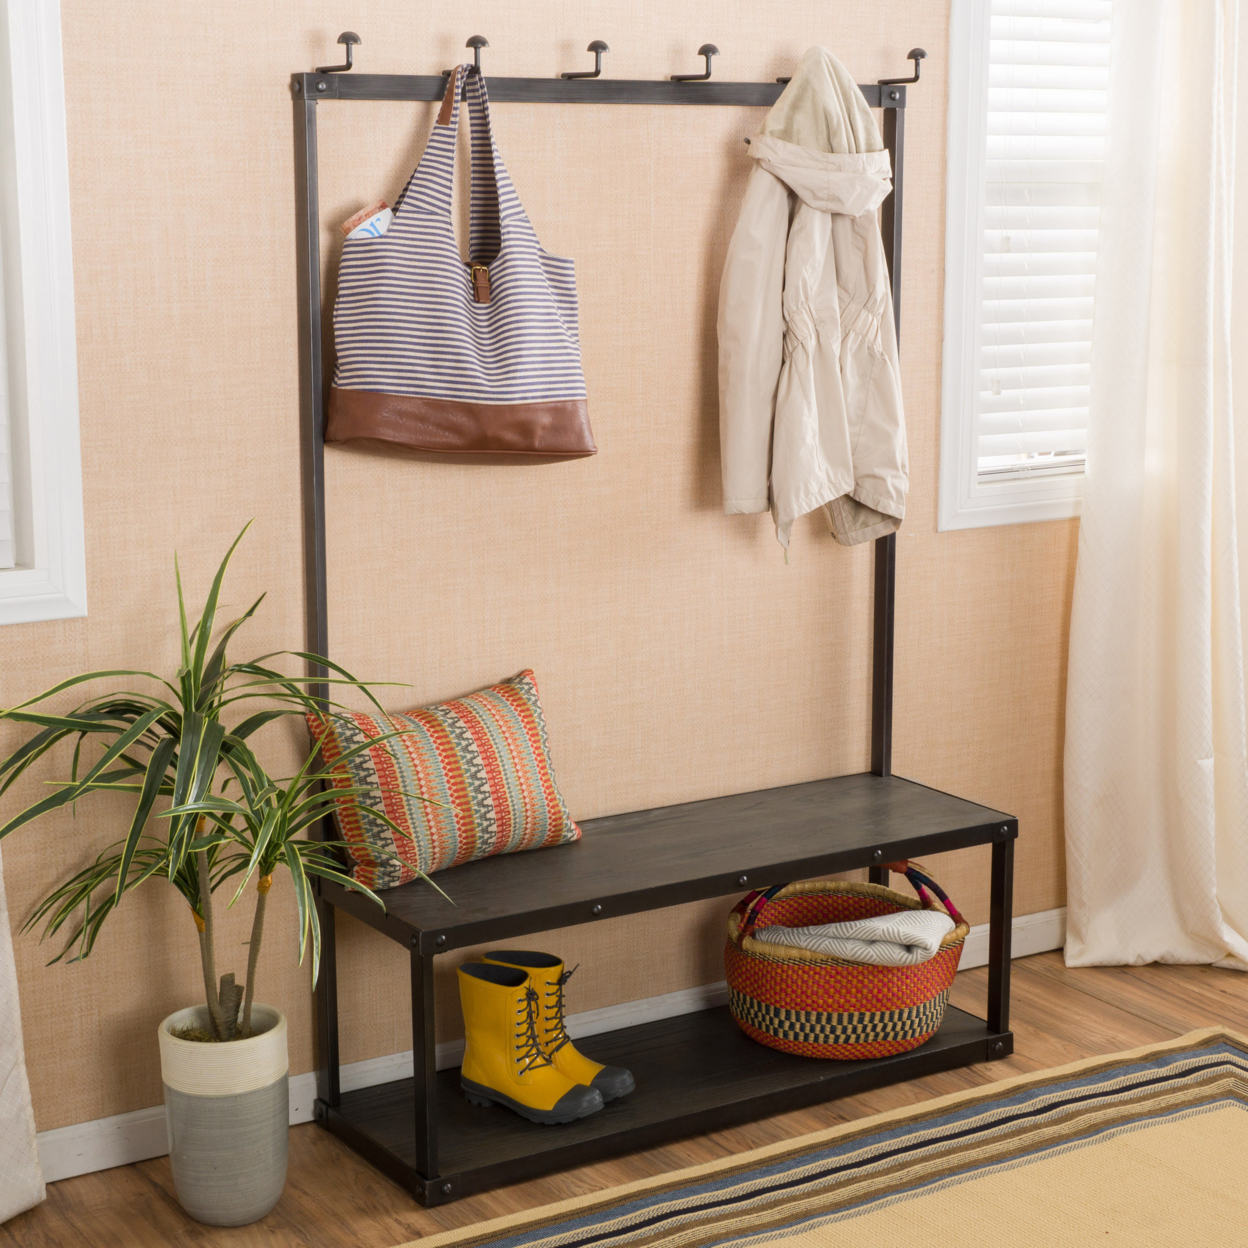 Elaine Grey Entry Bench with Coat Rack